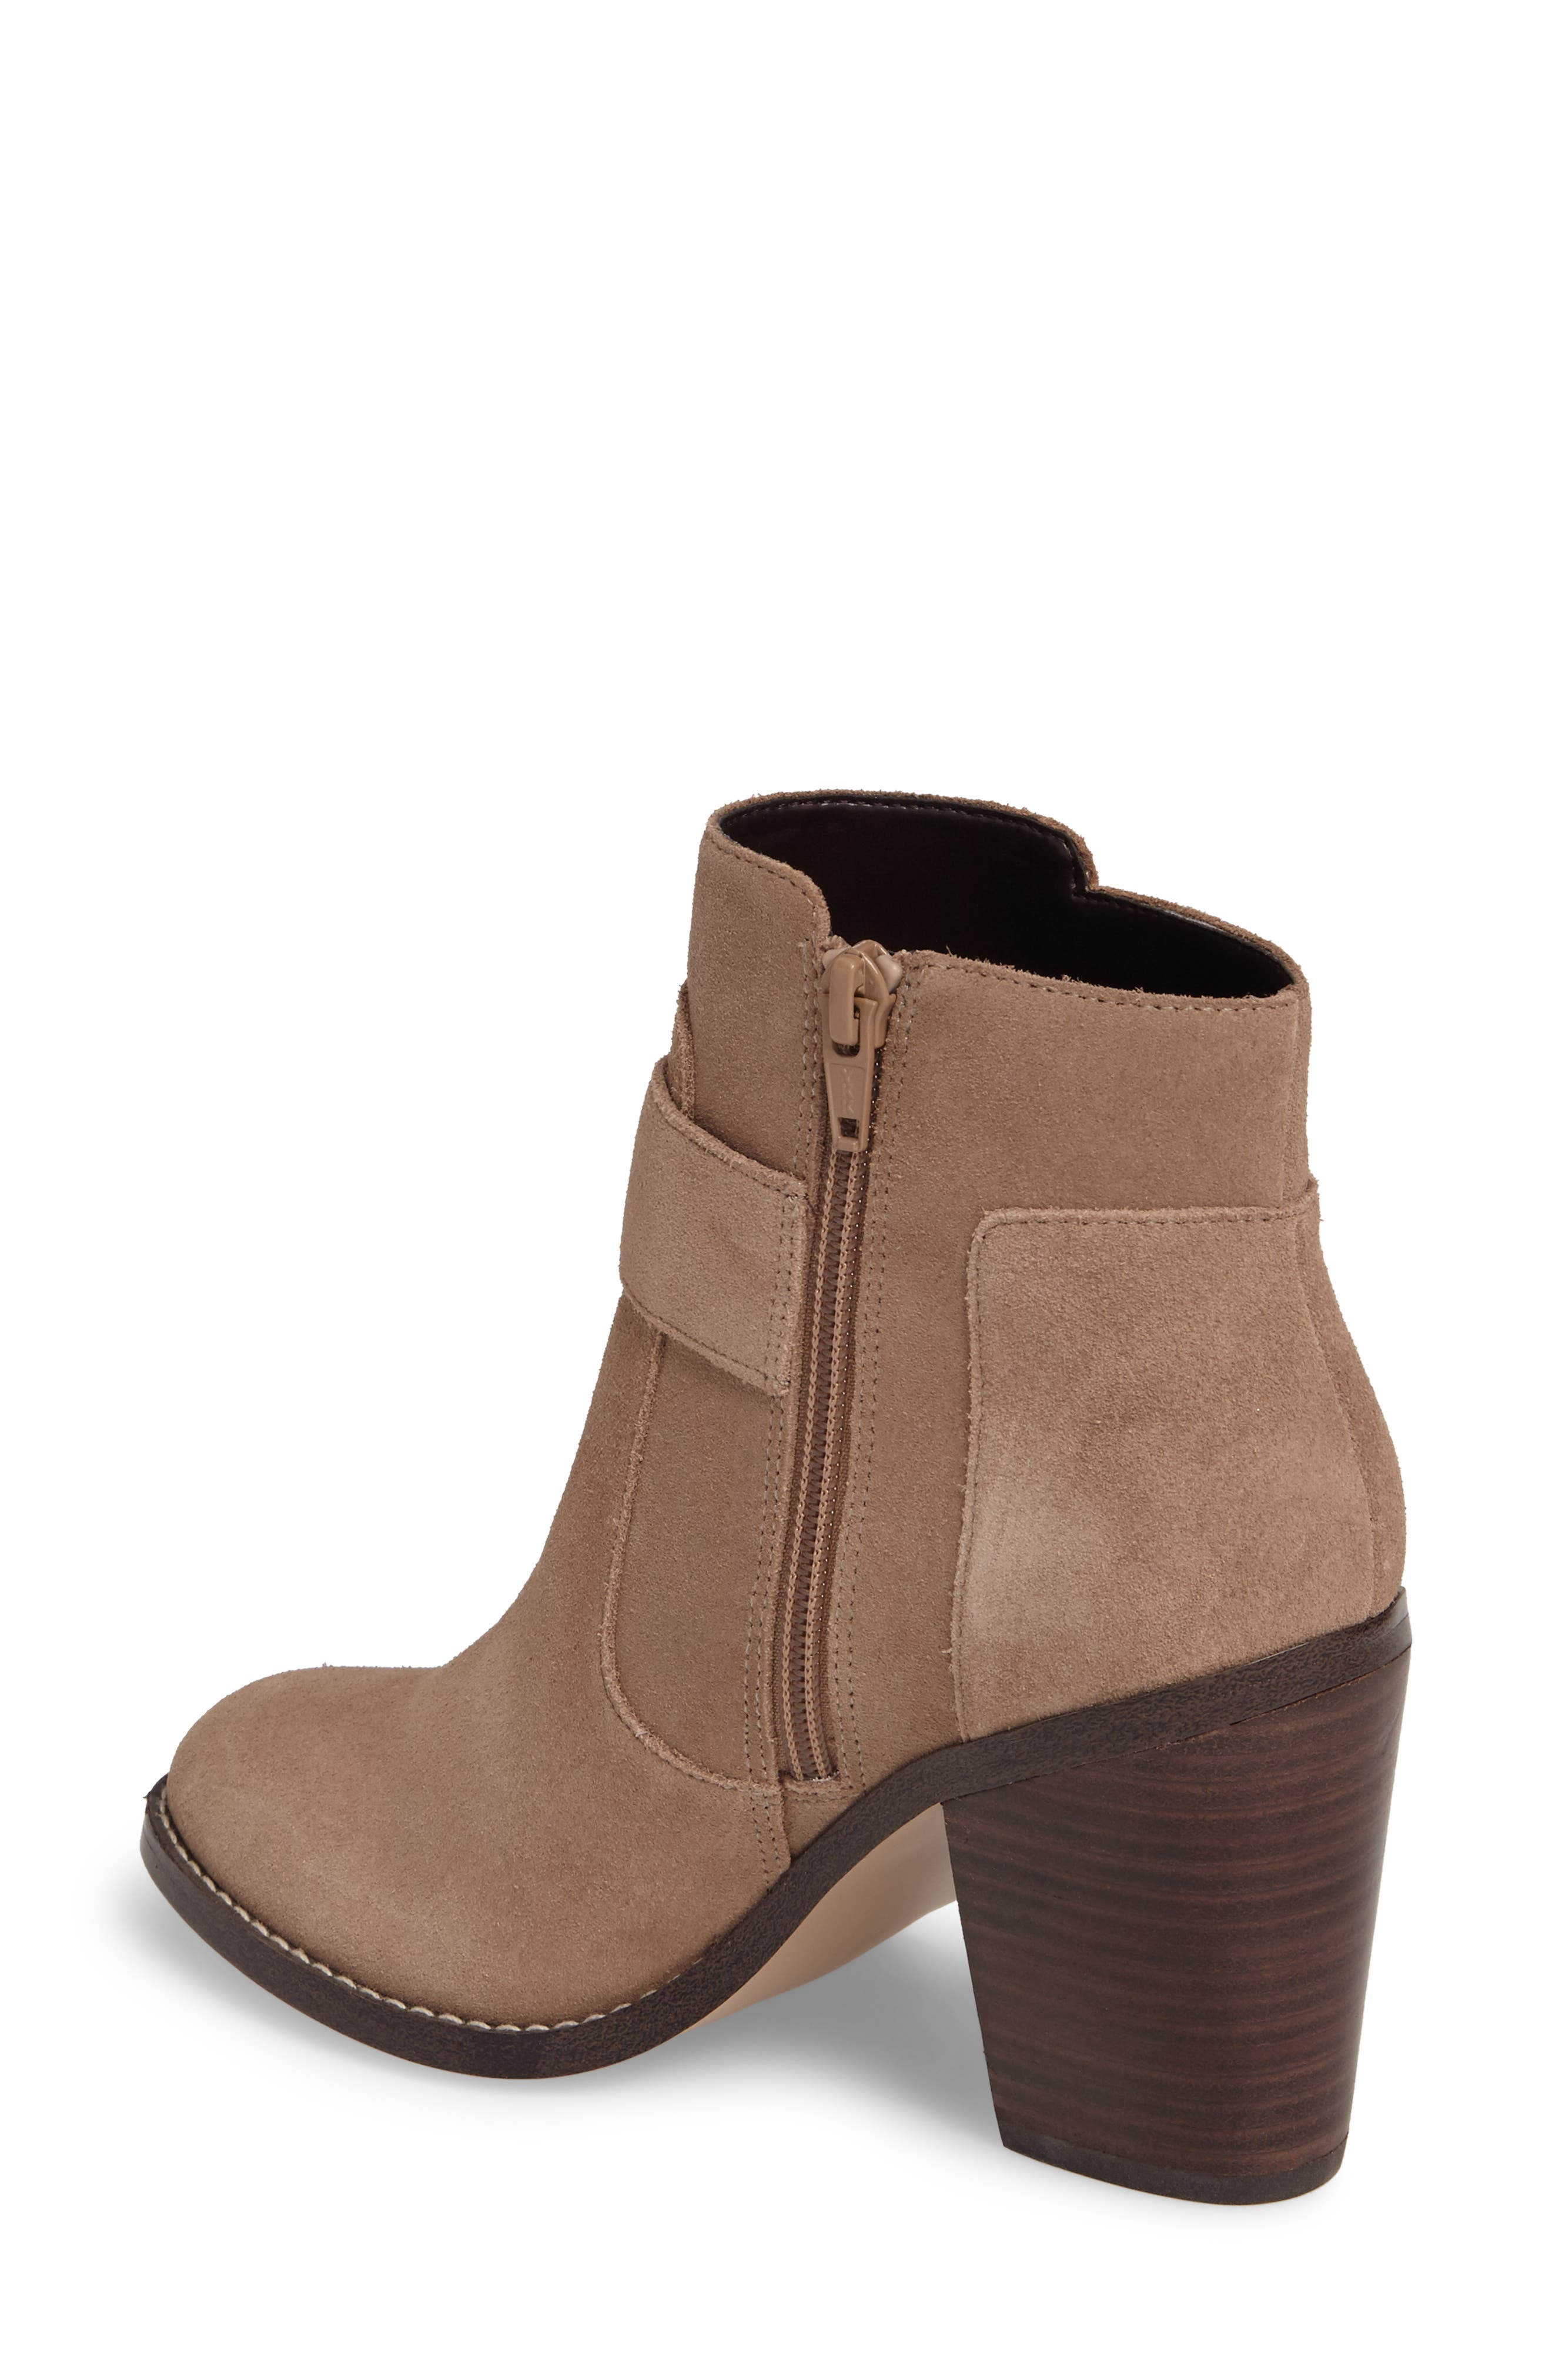 Grove Buckle Bootie,                             Alternate thumbnail 4, color,